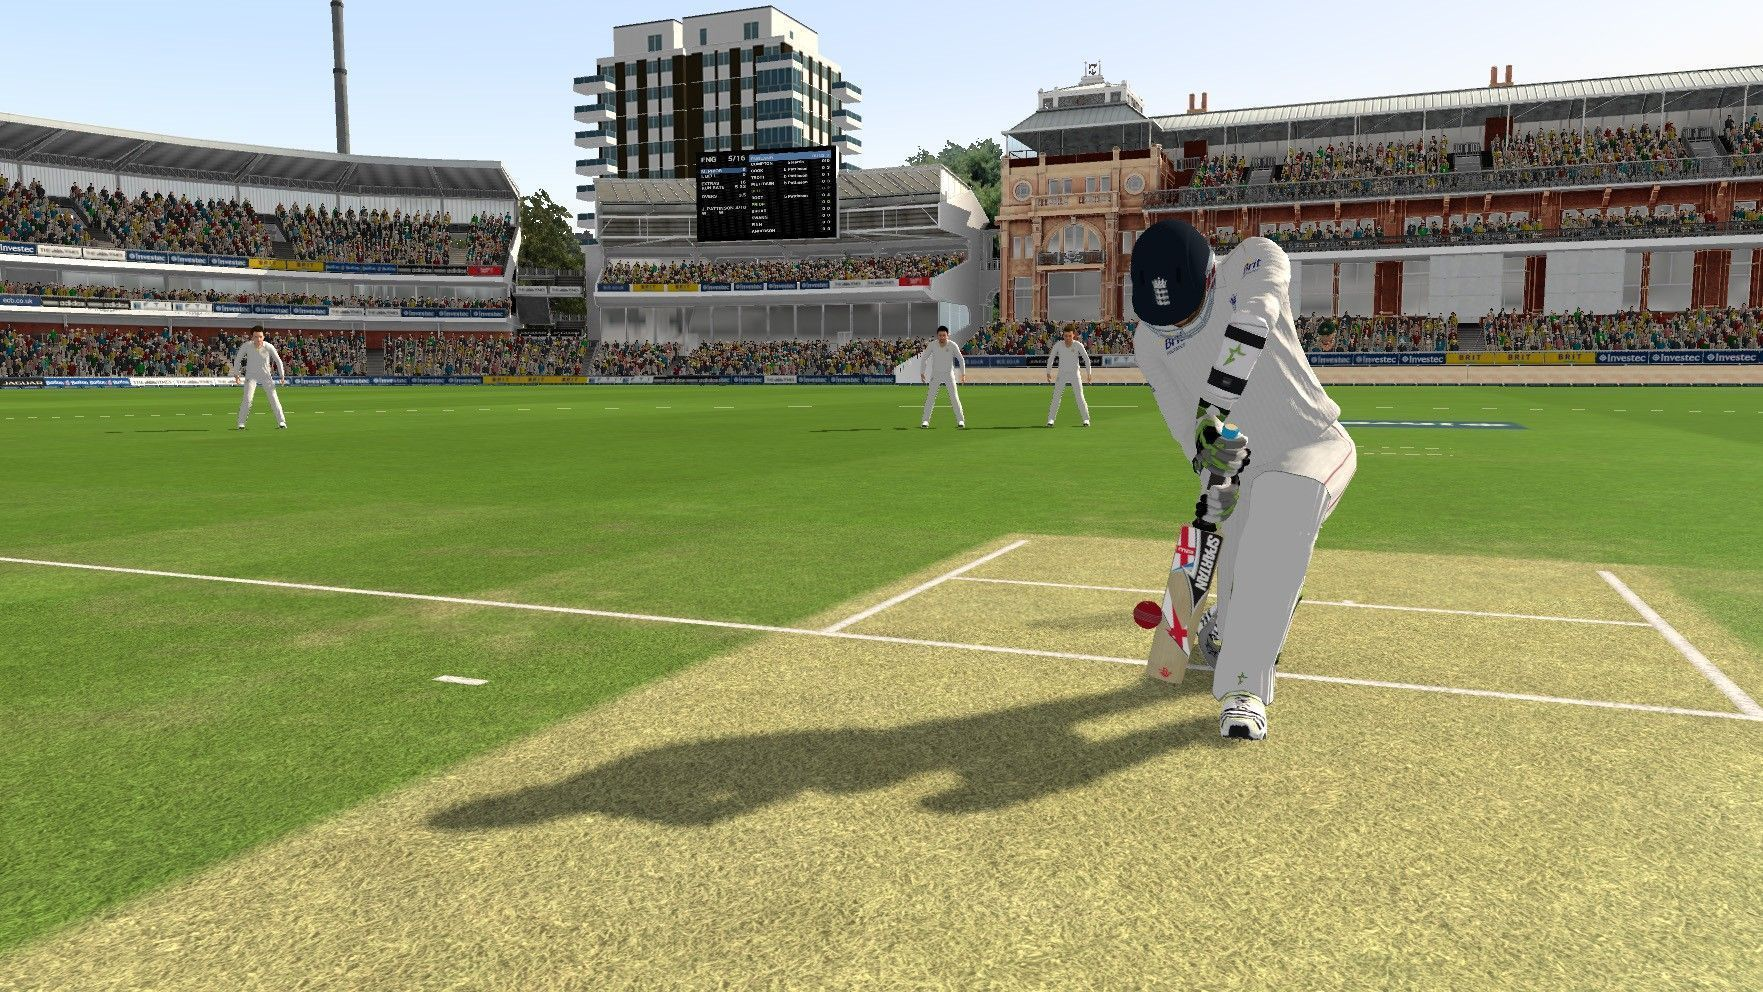 Download miniclip game cricket defend the wicket free | seaman.